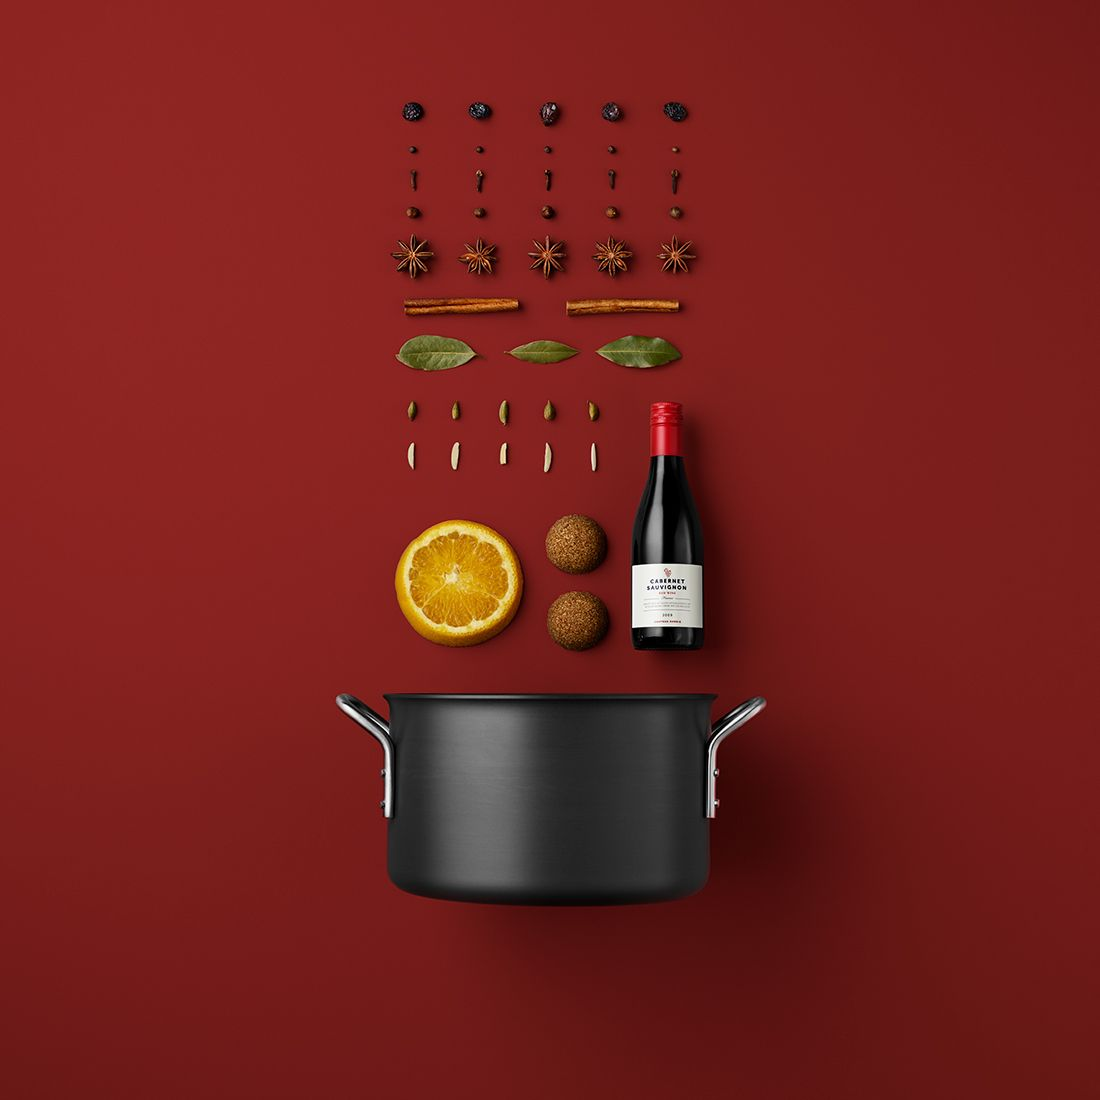 Recipes Organized Into Component Parts In Food Styling Photos By Mikkel Jul Hvilshoj Colossal Food Design Food Styling Food Photography Tips